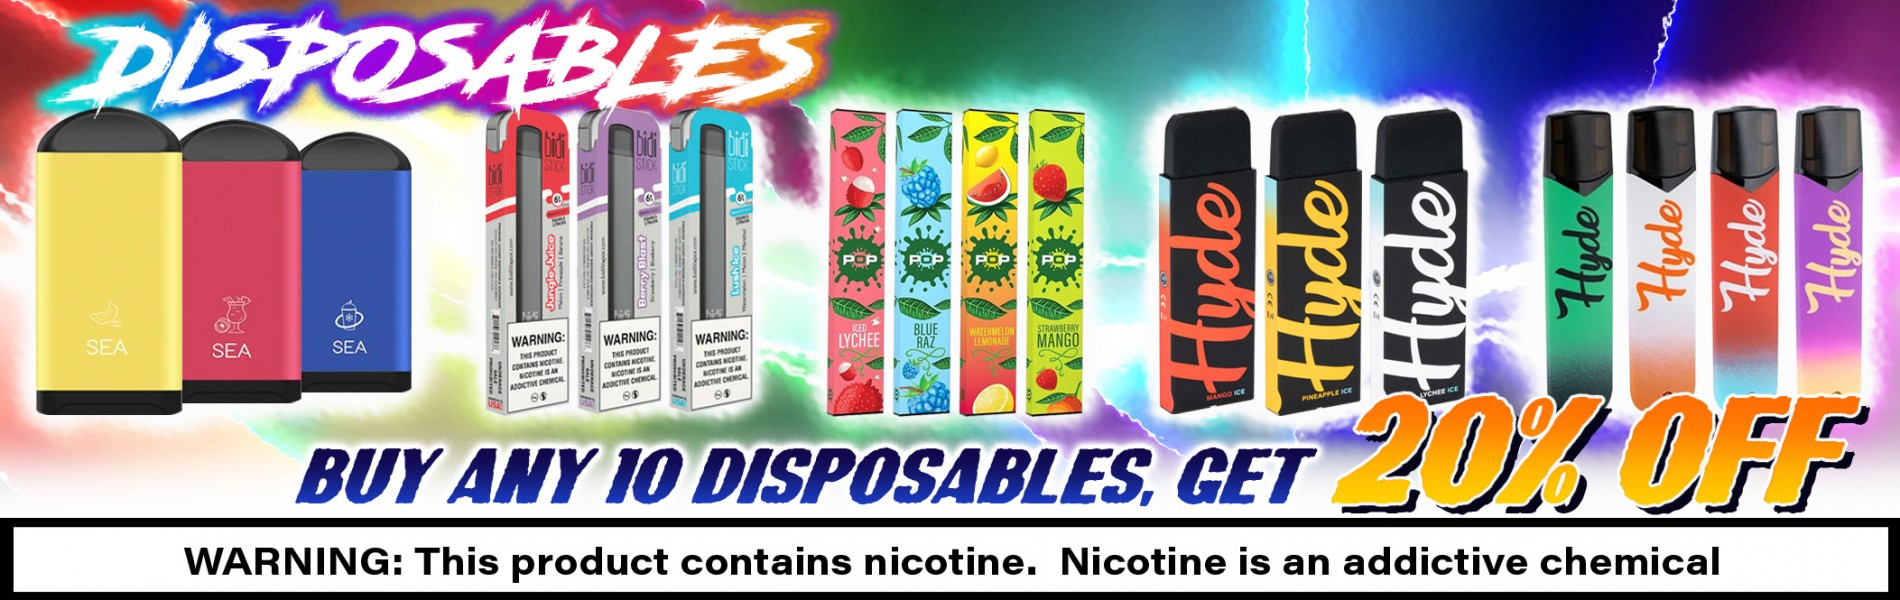 Disposables - Buy Any 10 Disposables, Get 20% Off